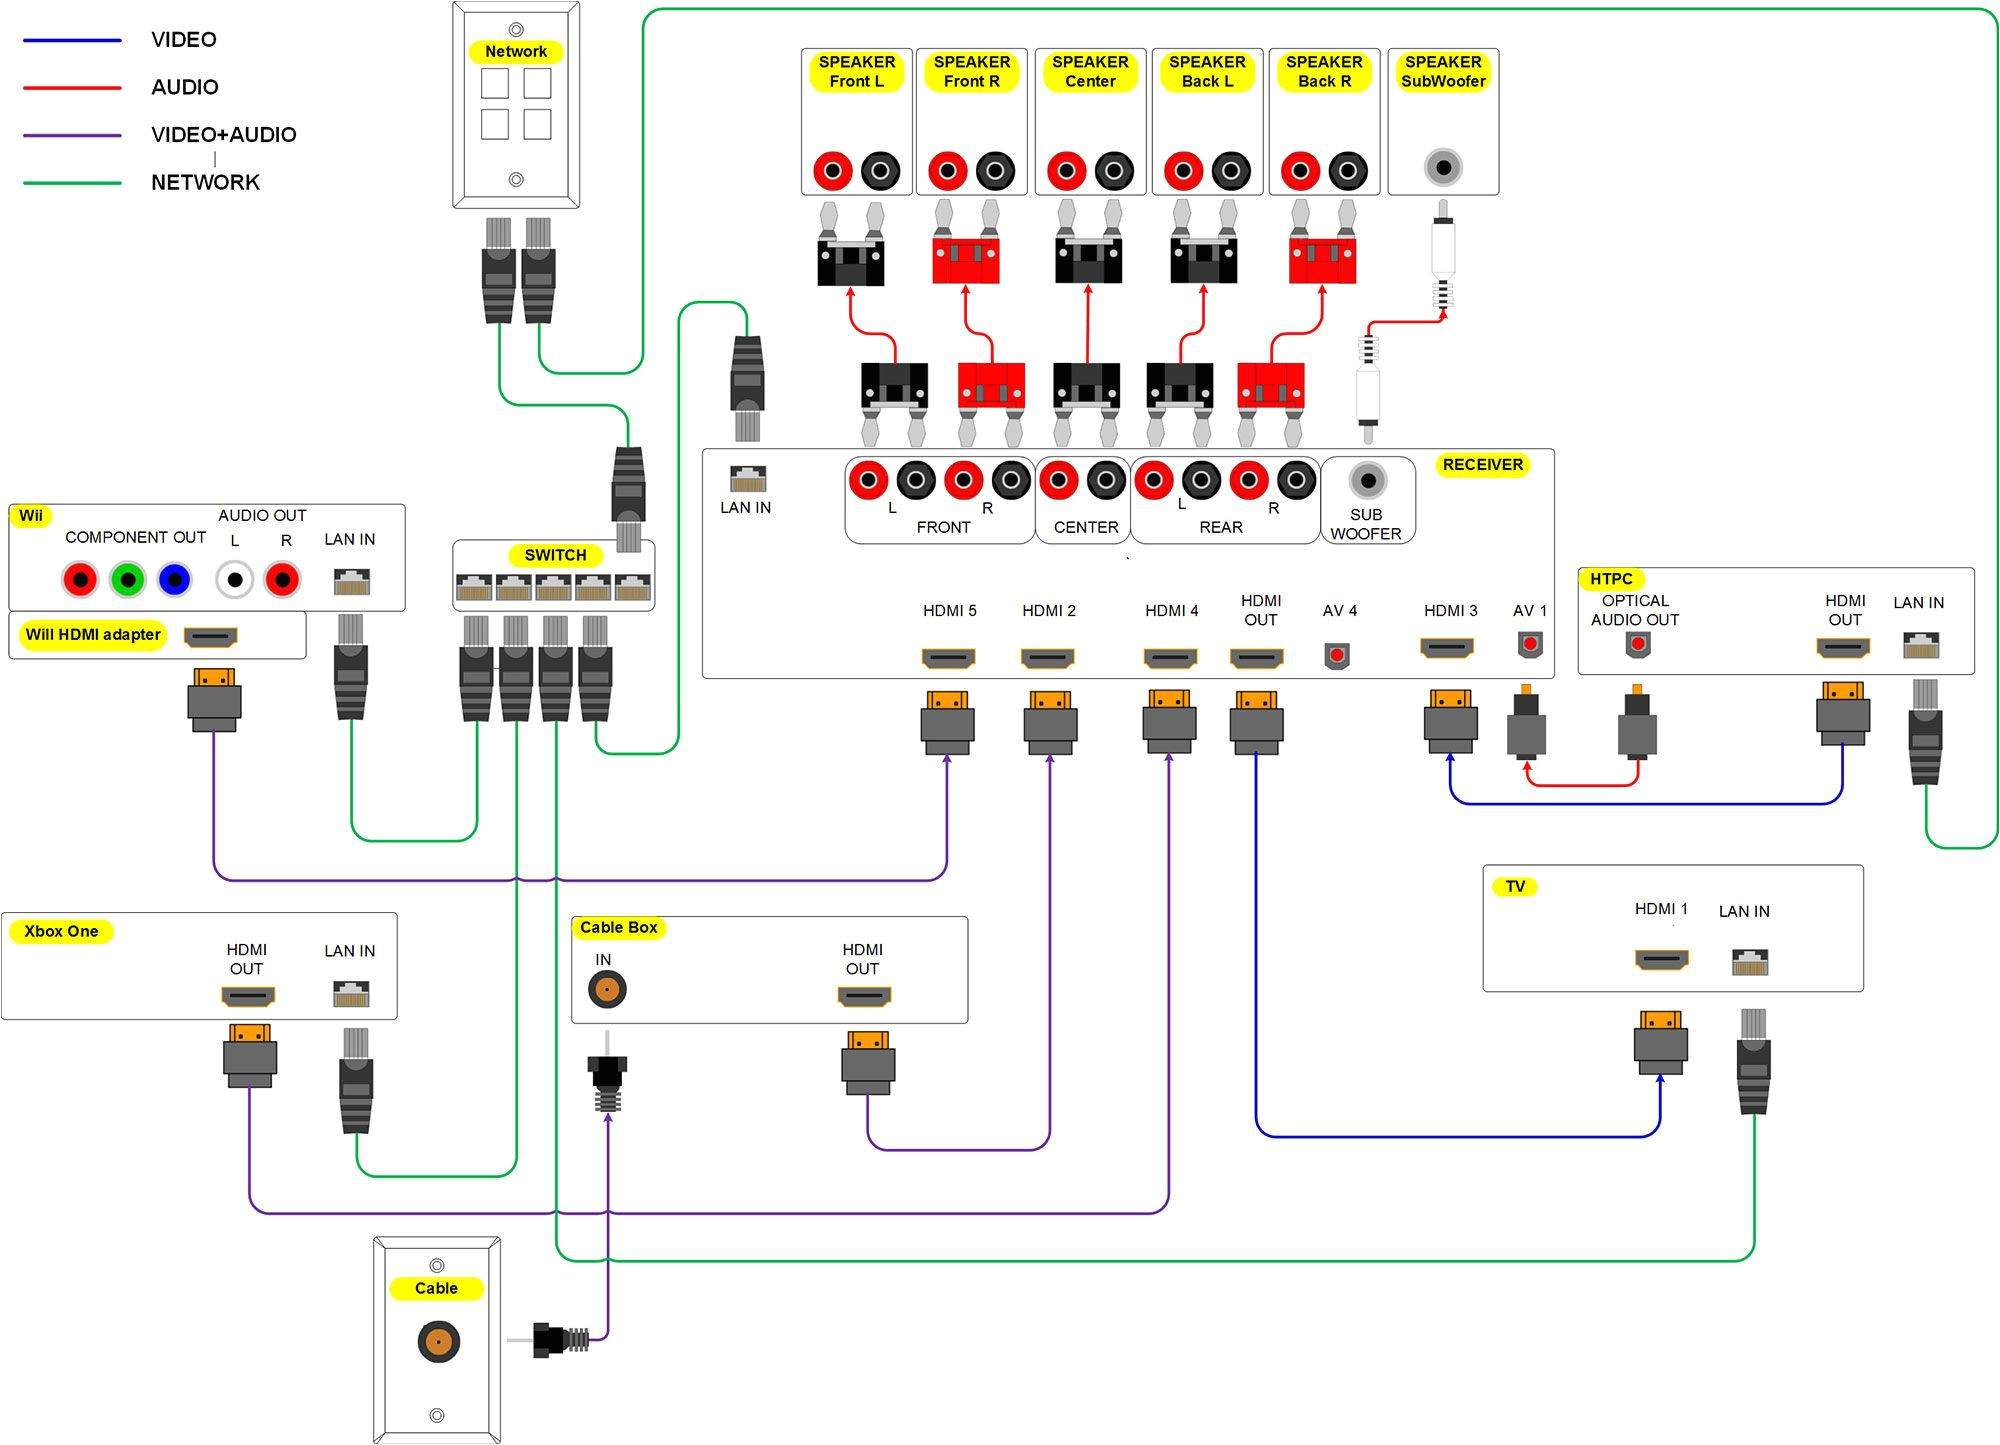 patient entertainment system wiring diagram wiring diagram rowshome entertainment system wiring wiring diagram toolbox home entertainment